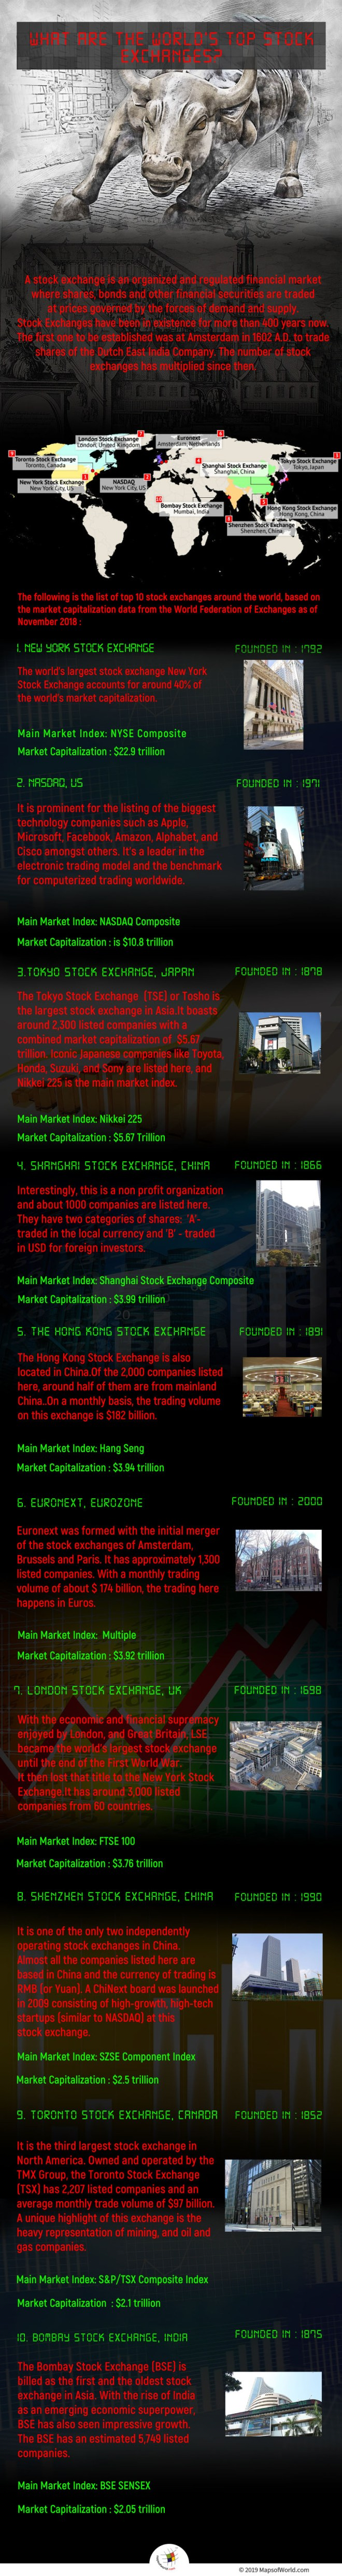 Infographic Giving Details on The World's Top Stock Exchanges